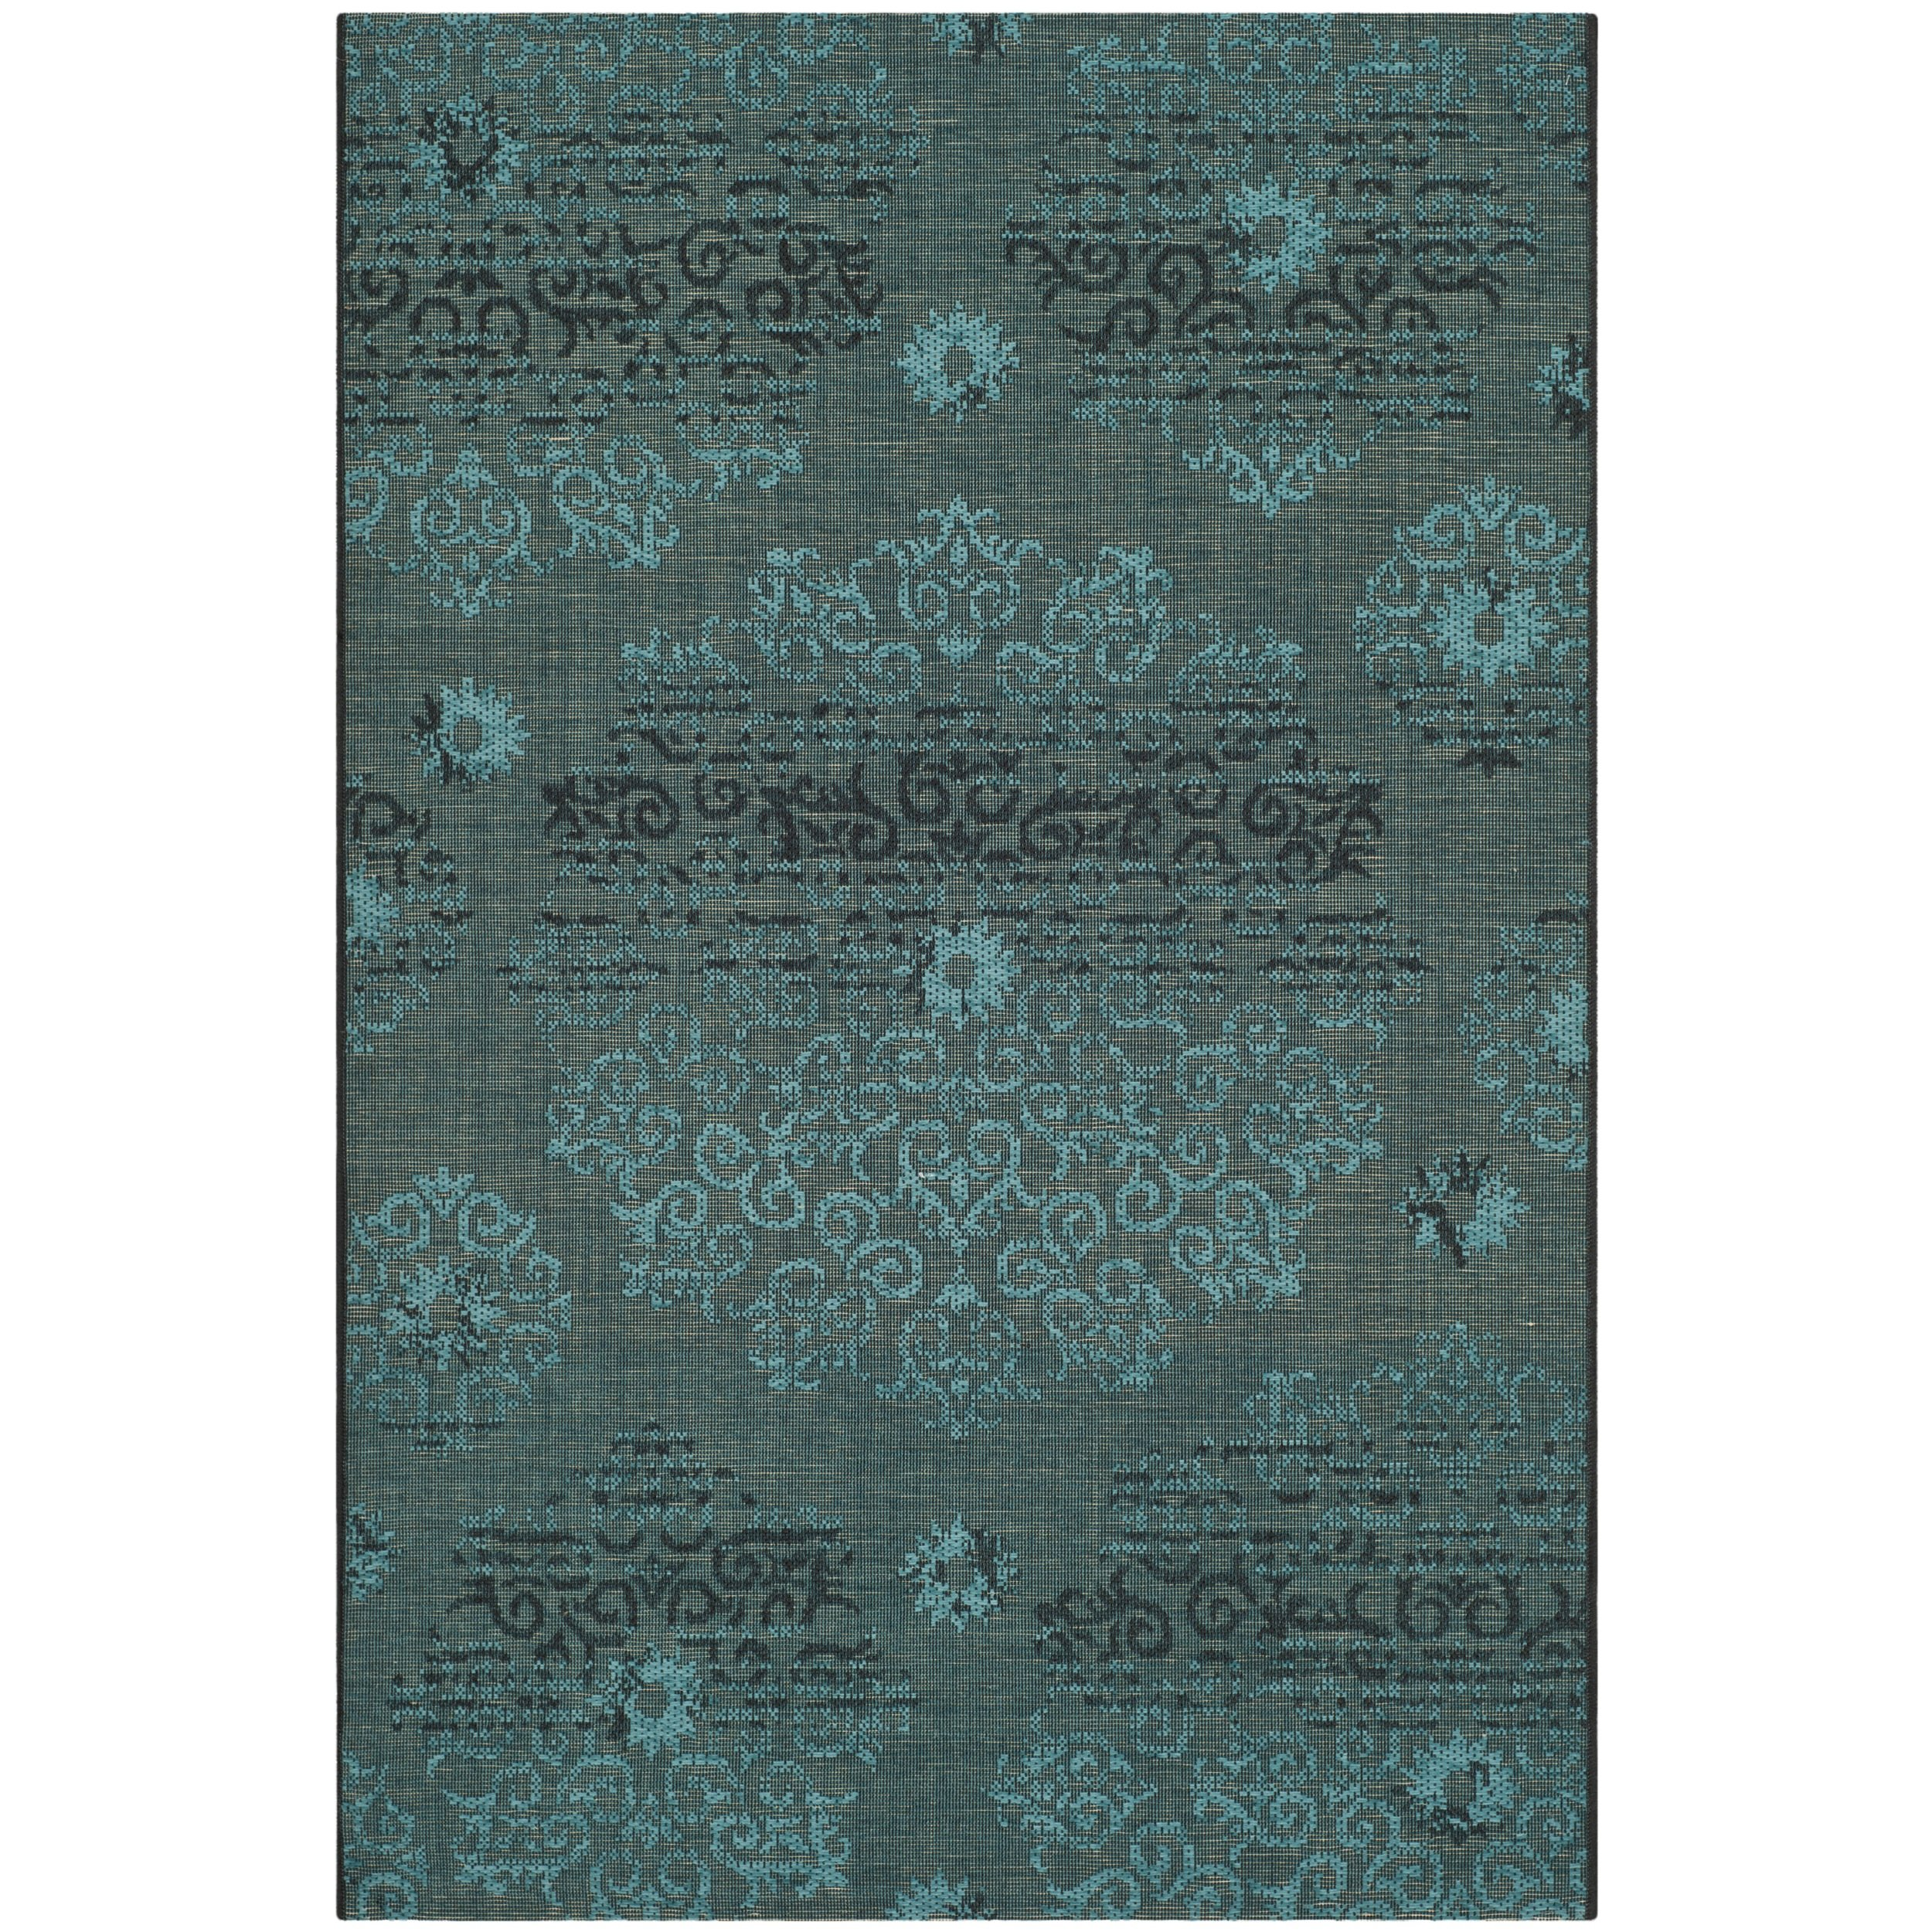 Safavieh Palazzo Collection PAL129-56C4 Black and Turquoise Area Rug (2'6'' x 5')